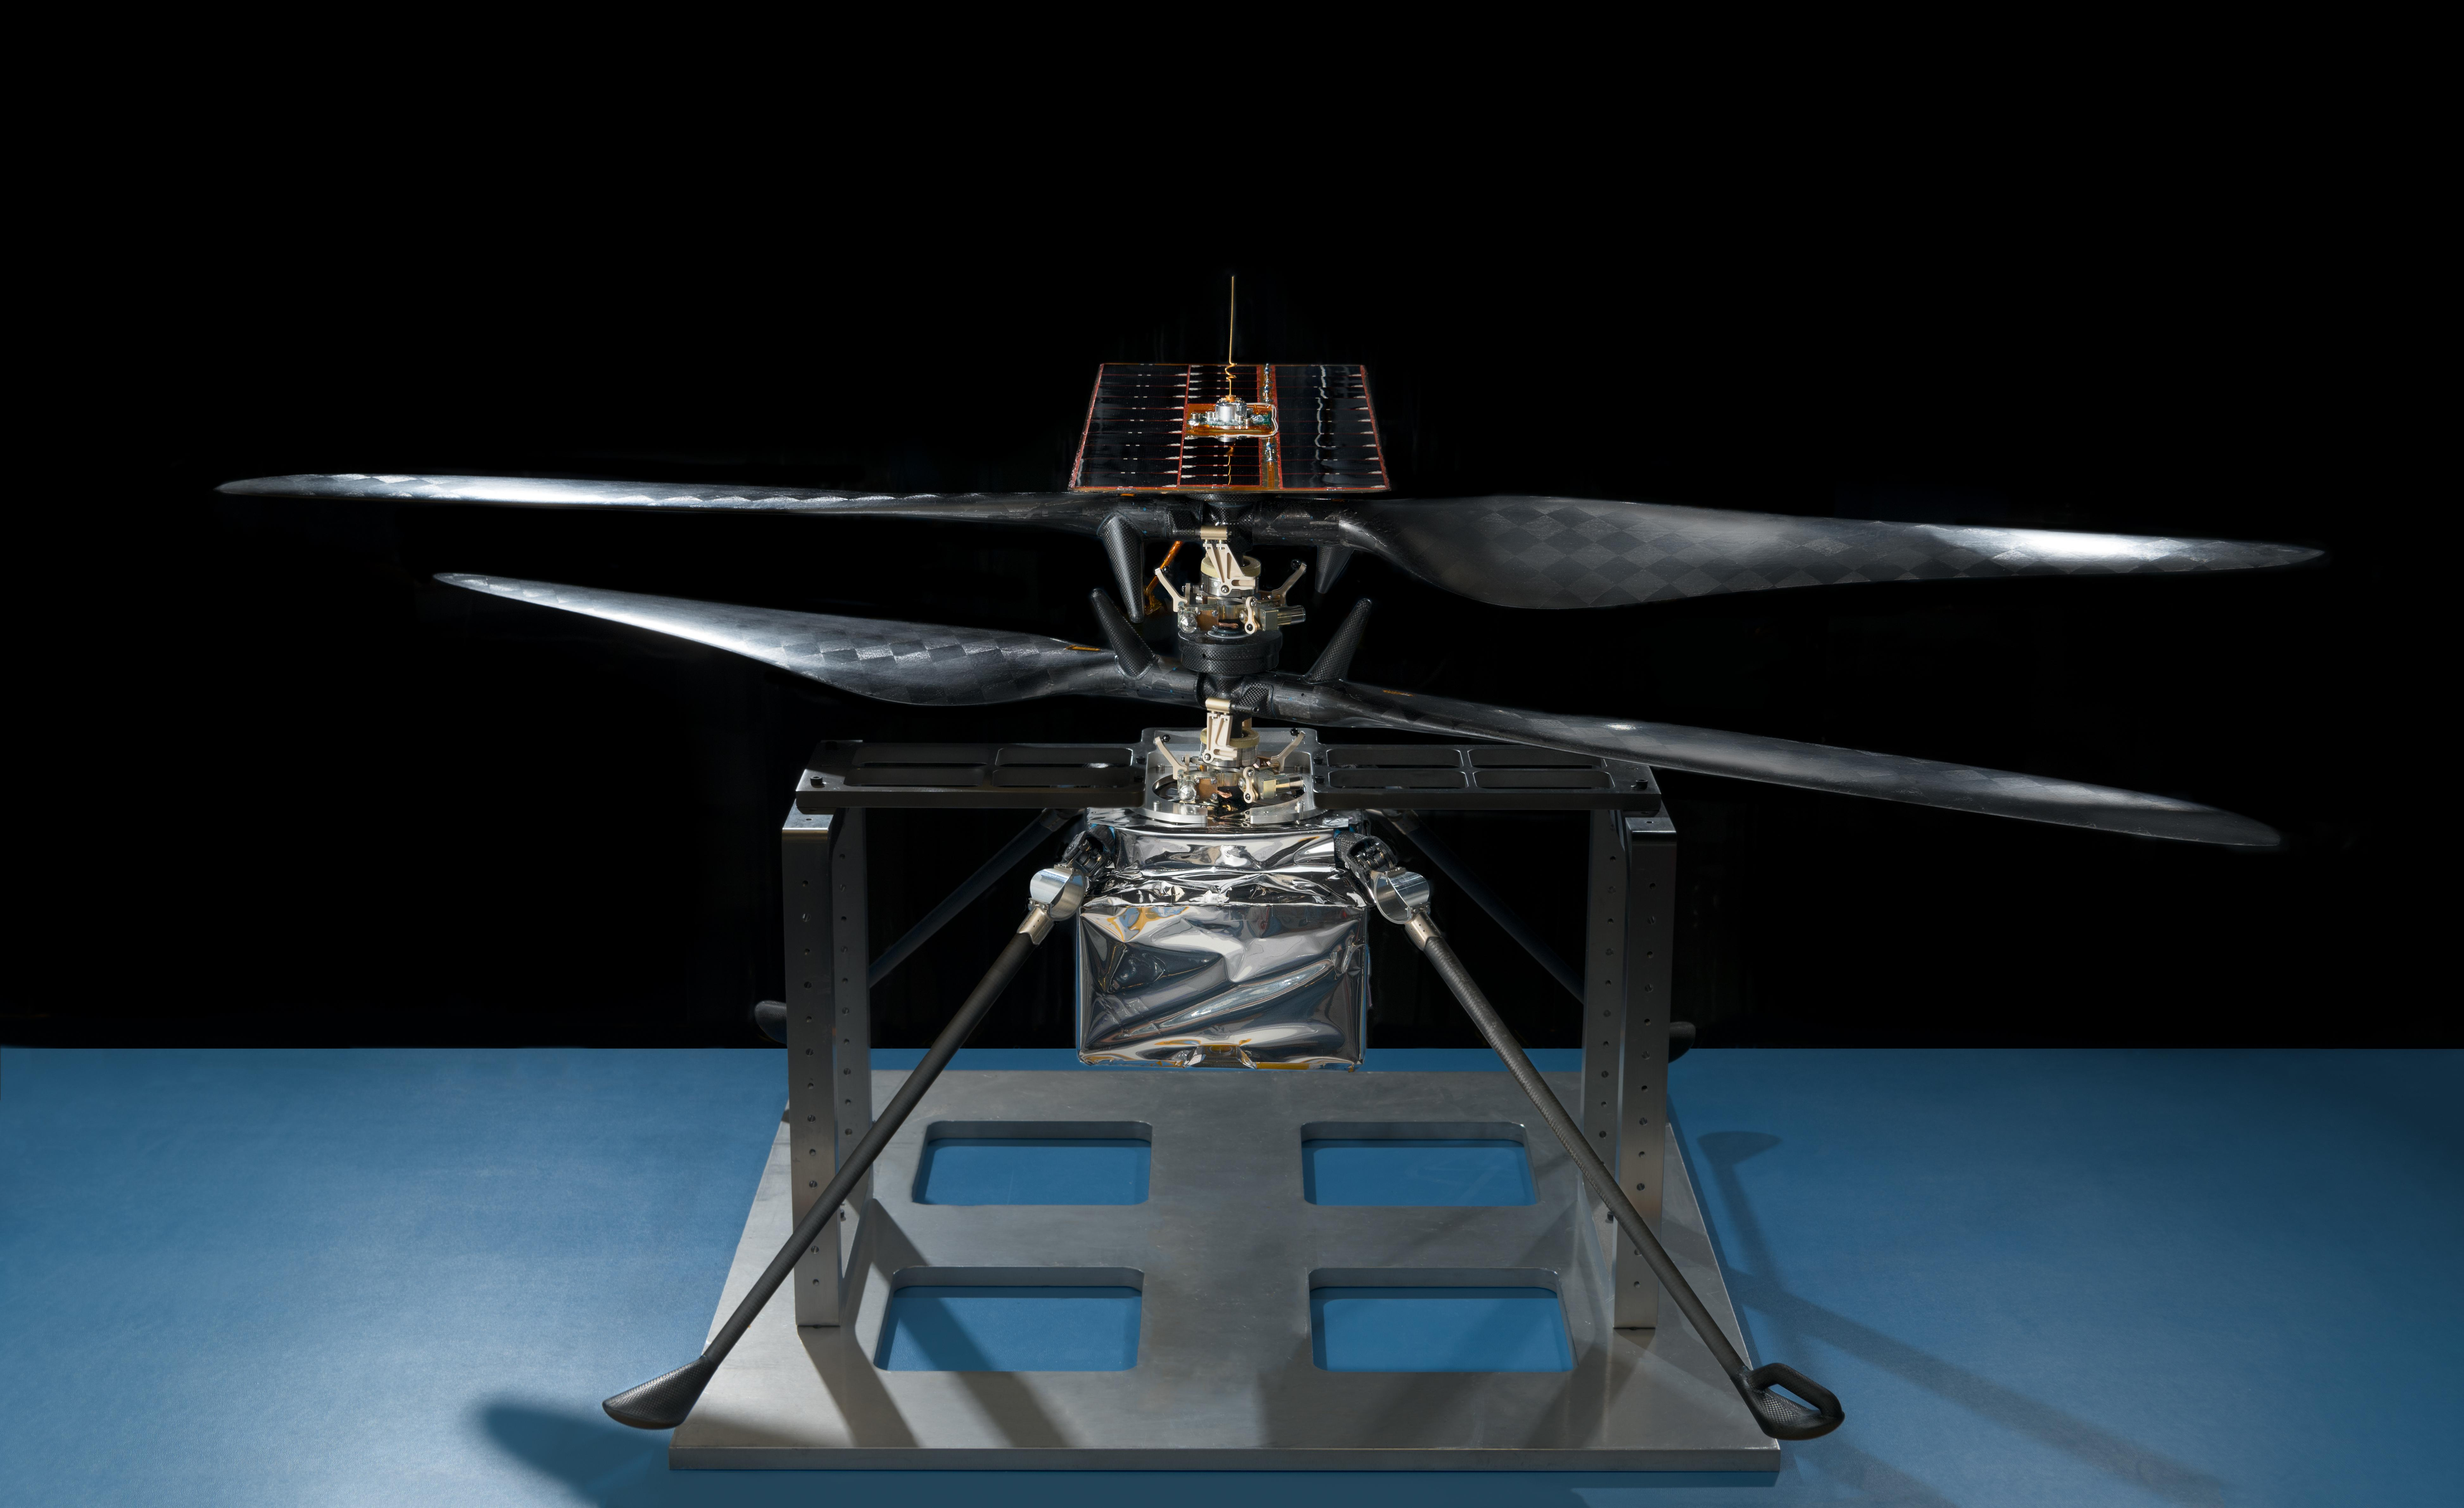 Nasa moves a step closer to flying a helicopter on Mars in